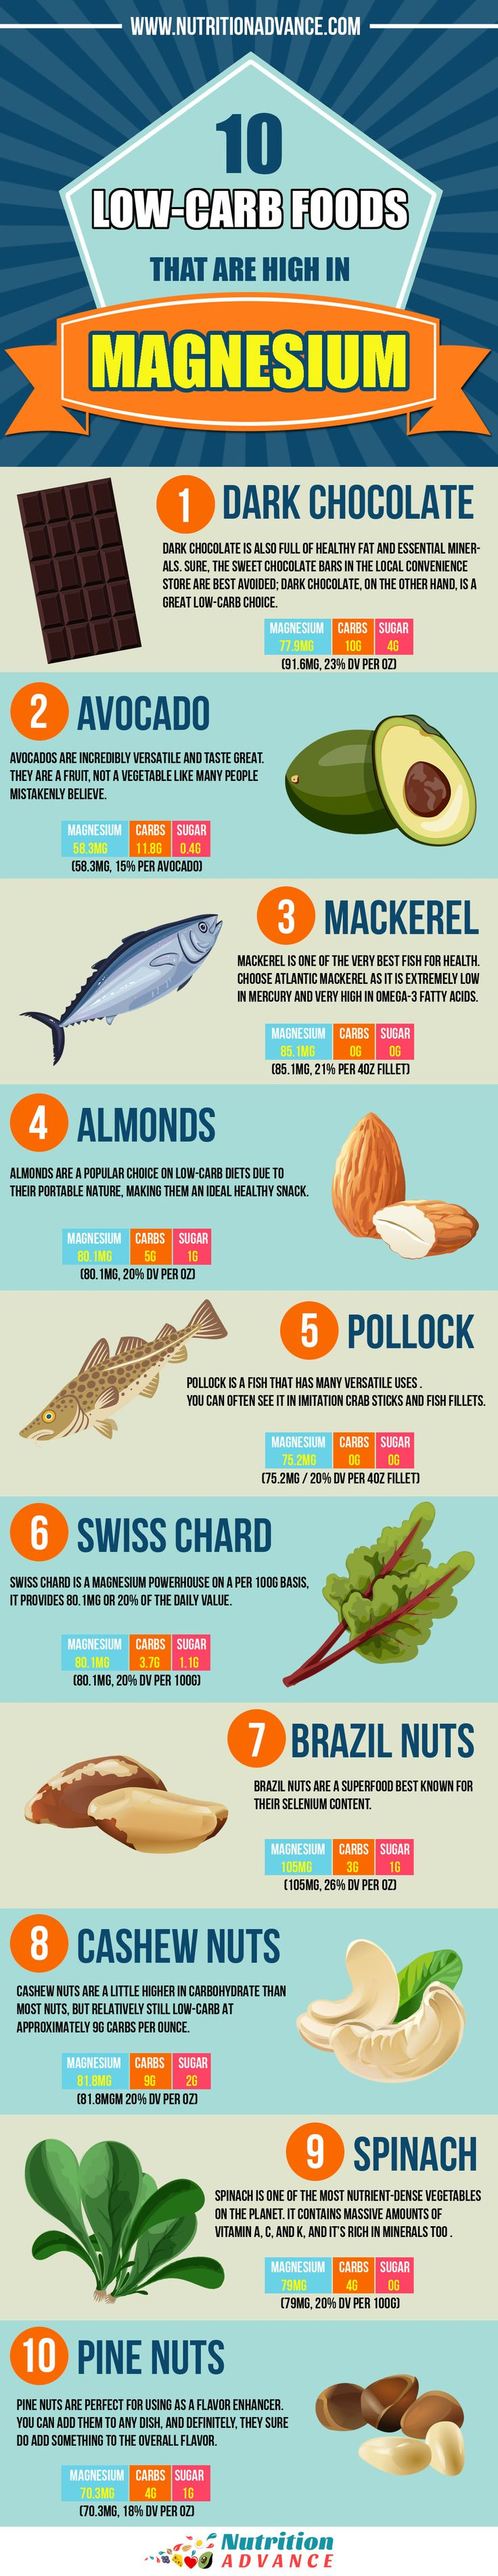 10 Low Carb Foods That Are High in Magnesium. Low carb diets are extremely healthy if they are well implemented - and doing the diet in a healthy way involves making sure you're eating lots of nutrient dense foods. One of the most important minerals is magnesium and it is involved in almost every biological process in our body. This infographic shows some great foods that contain the mineral, and they are all LCHF and keto friendly. Dark chocolate, avocado, mackerel, almonds, swiss chard…